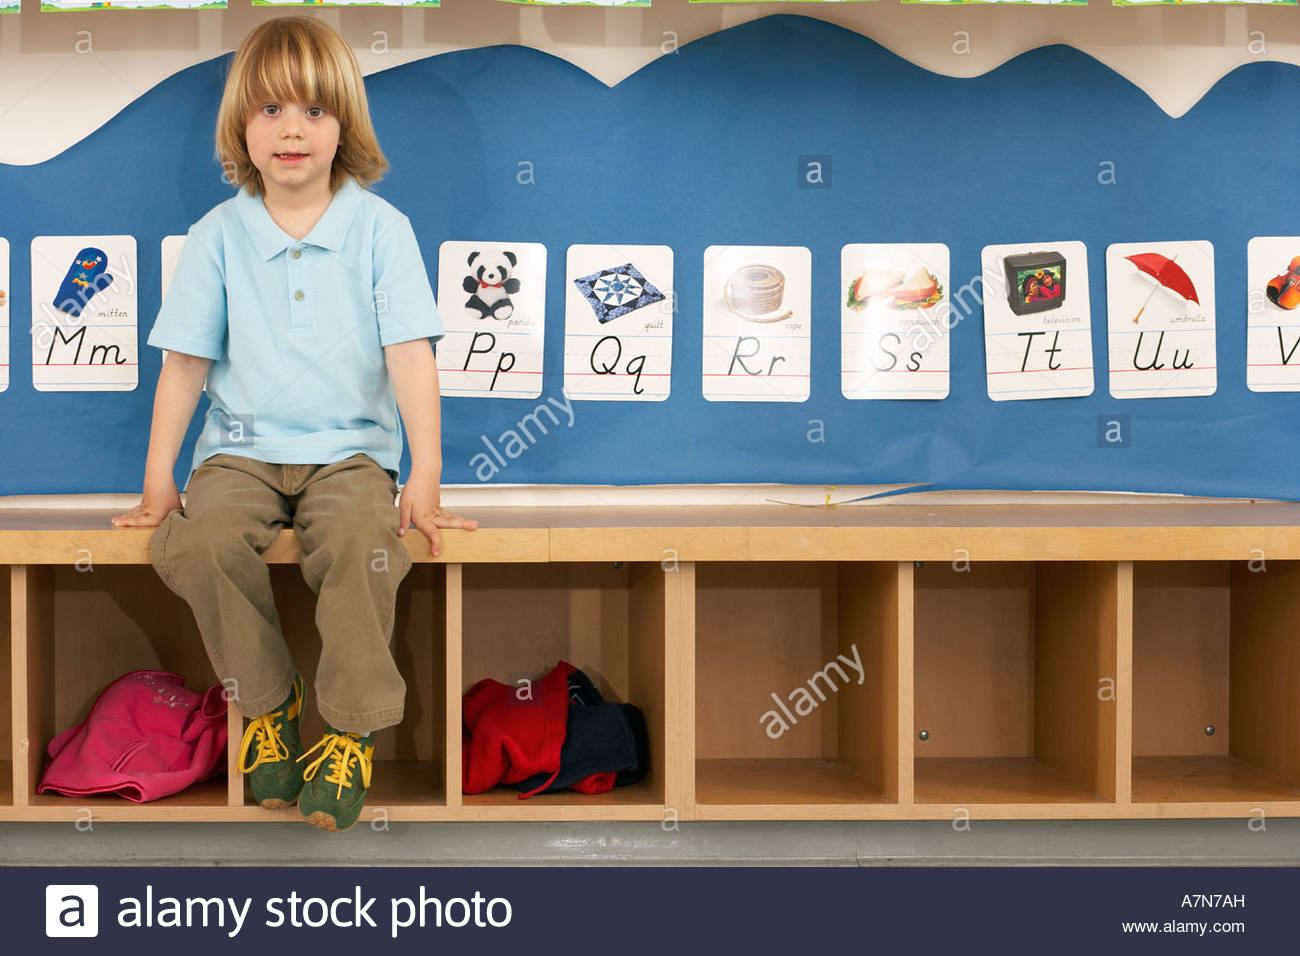 Blonde boy 4 6 sitting on bench in classroom front view portrait alphabet cards on wall - Stock Image